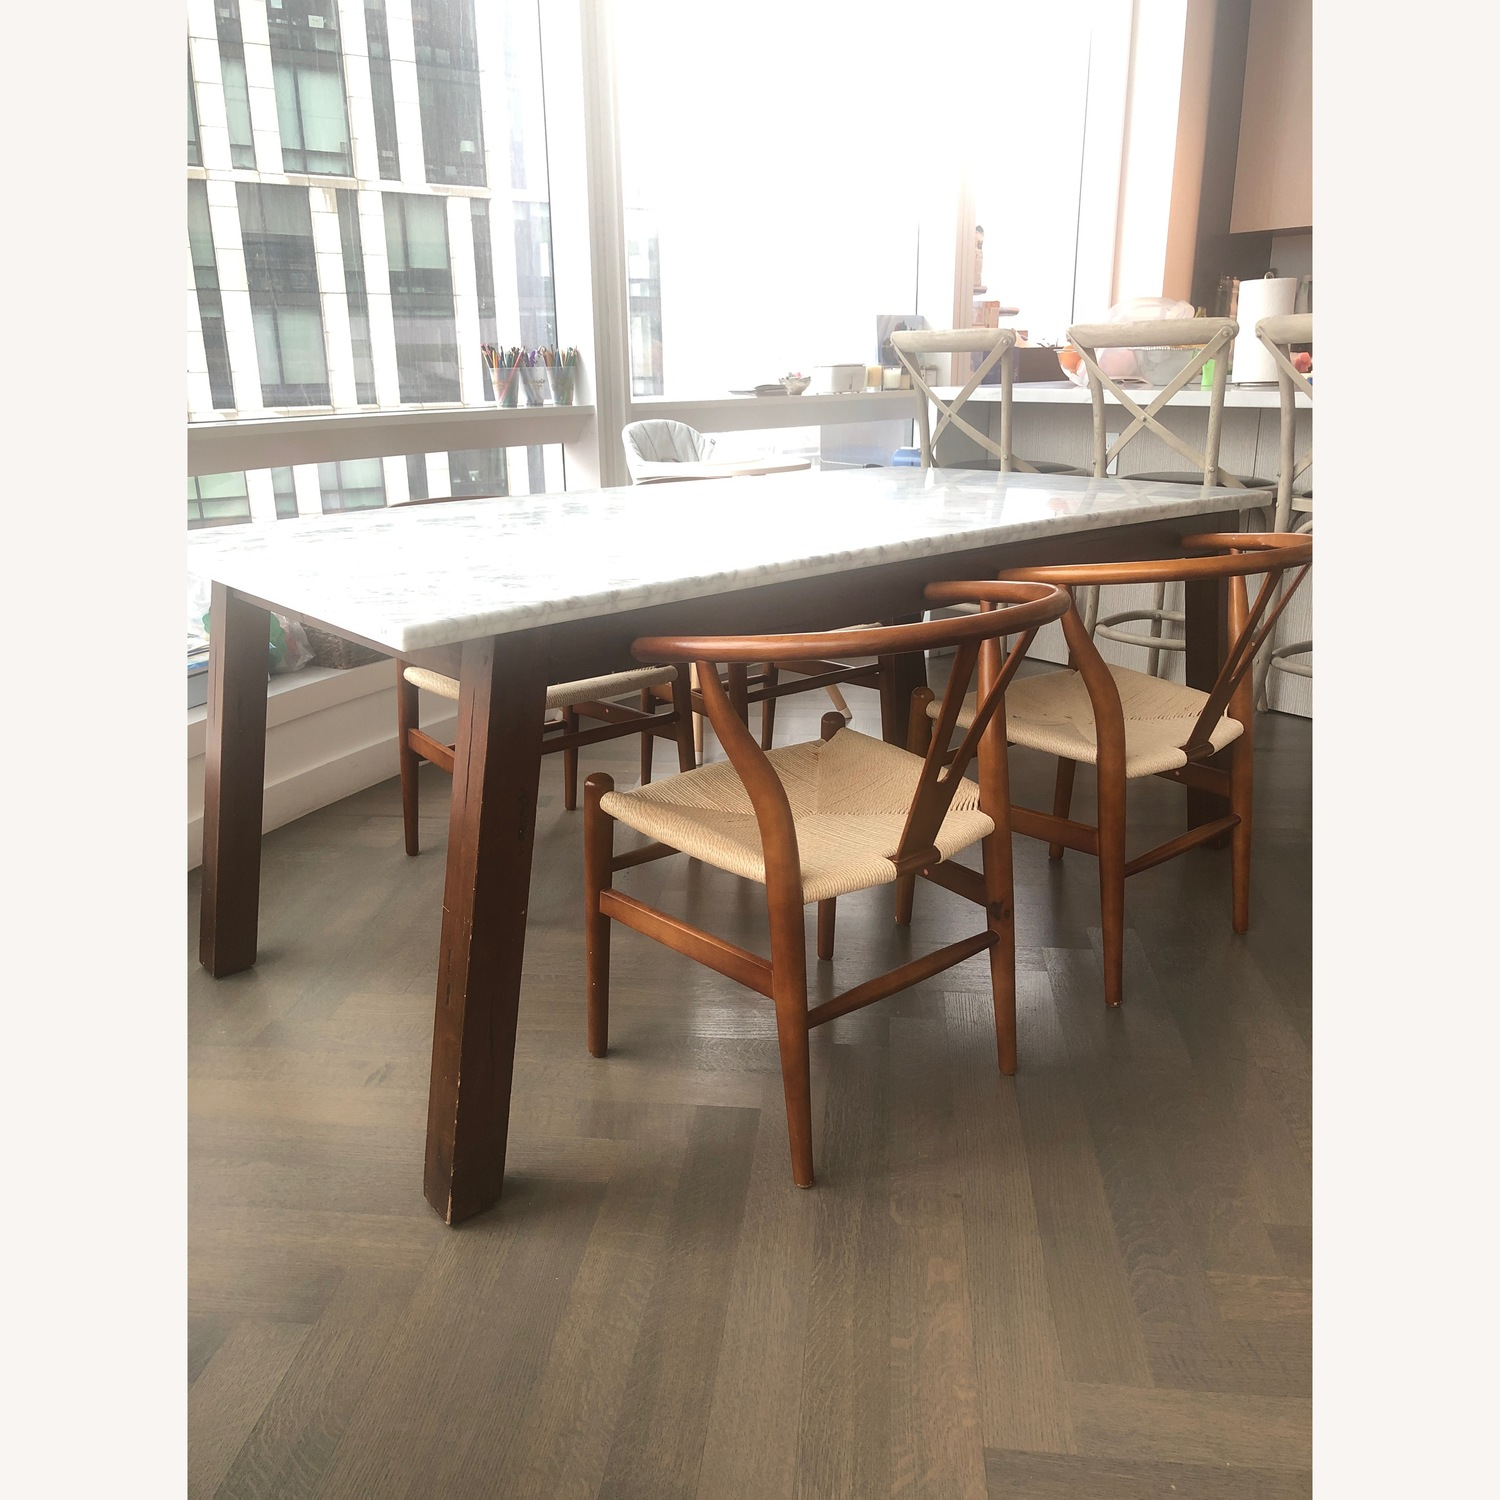 West Elm Marble & Wood Rectangular Dining Table - image-1